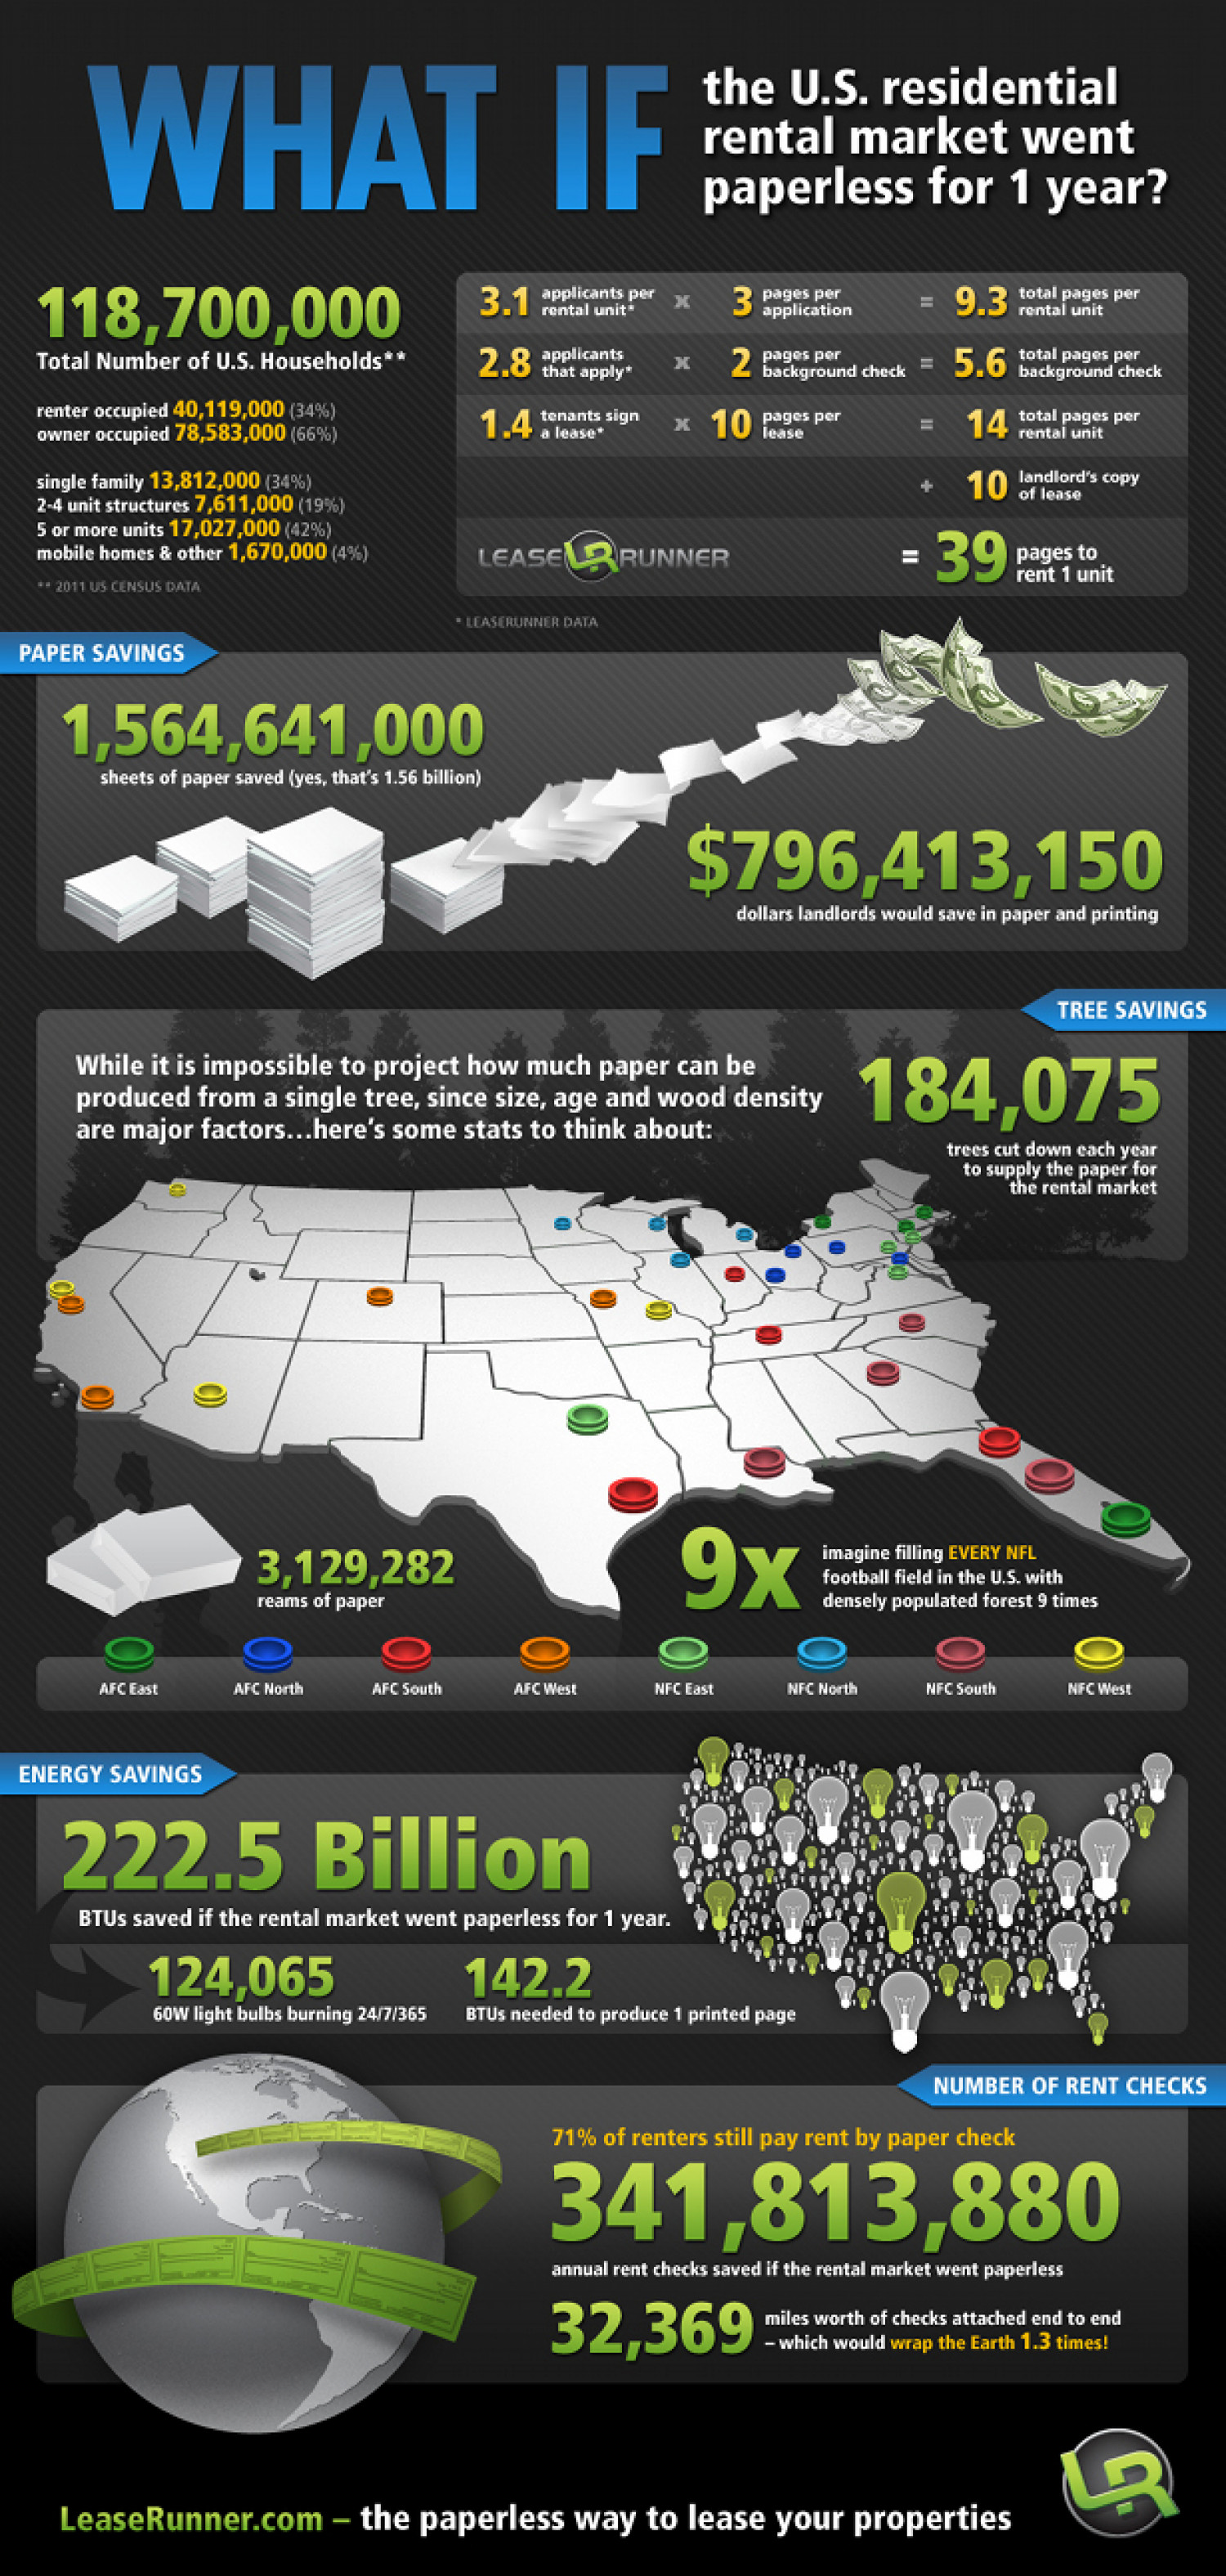 What if the US Residential Market Went Paperless for 1 Year? Infographic